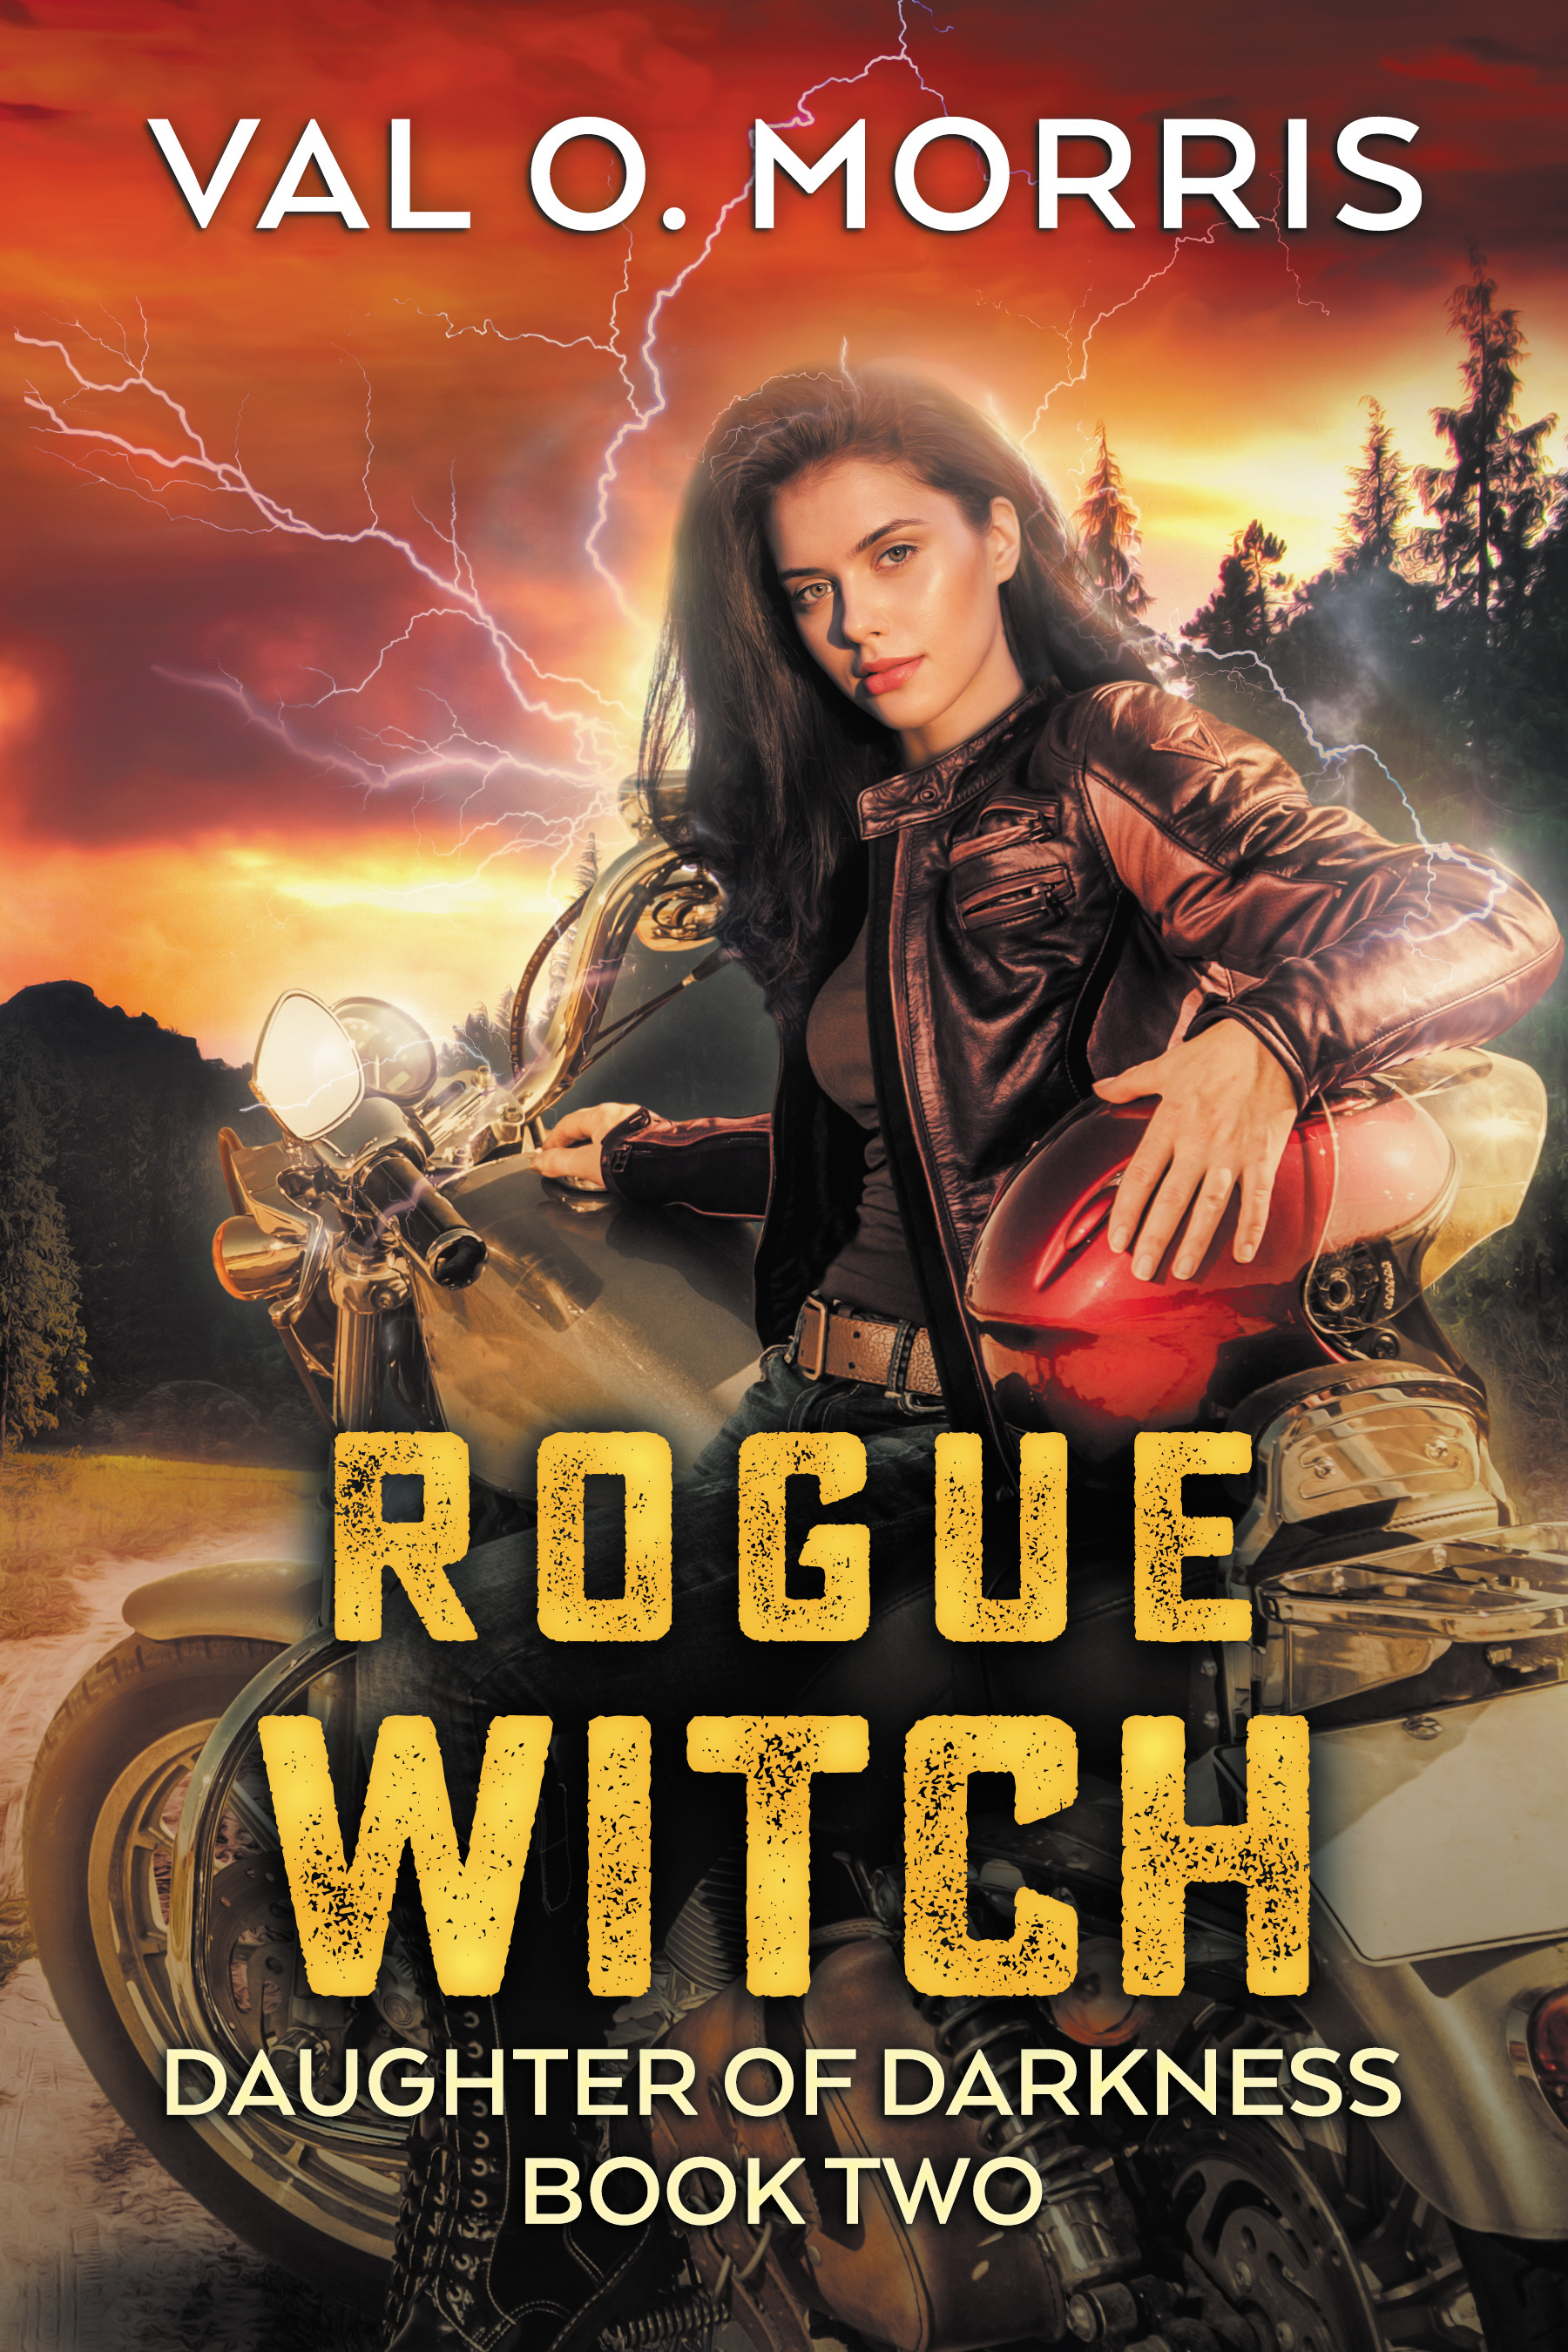 Rogue Witch: Daughter of Darkness Book Two by Val O. Morris